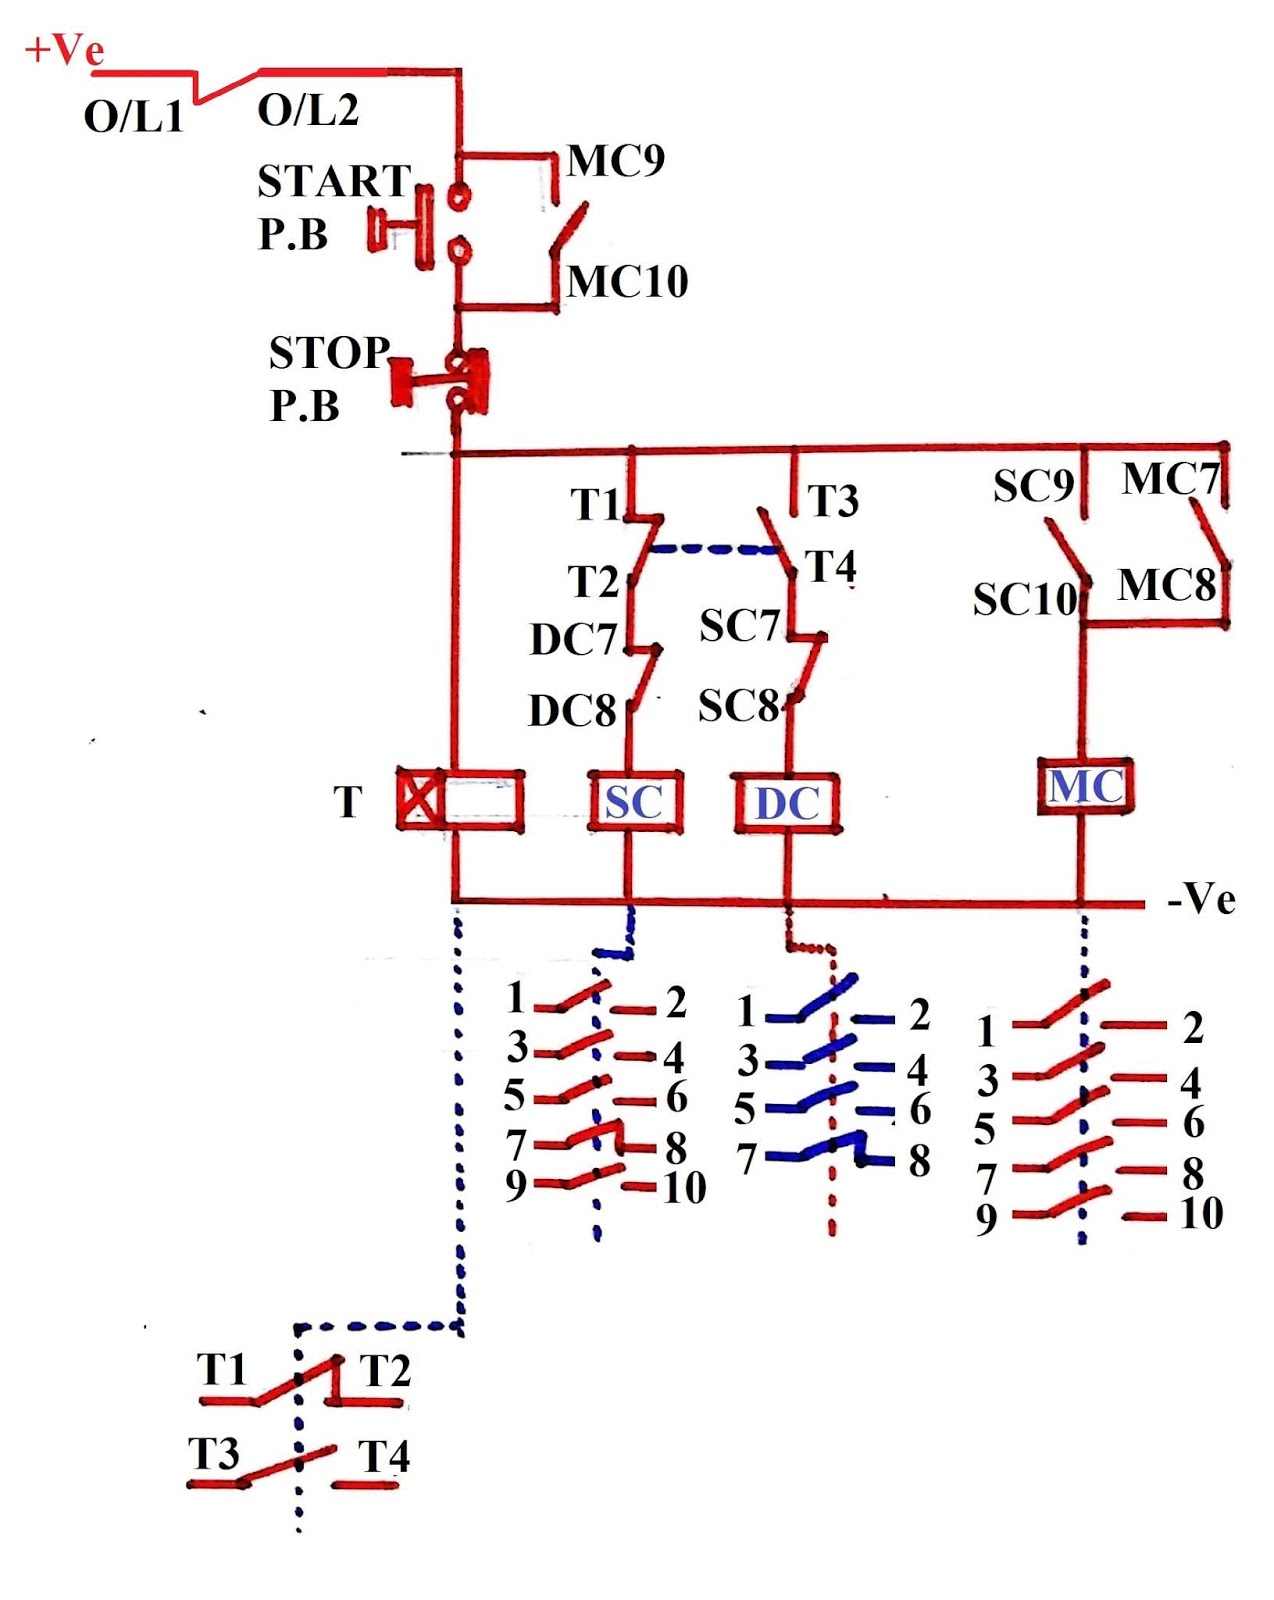 Automatic Star Delta Wiring Diagram - Limit Switch Wiring Diagram At Ehow  for Wiring Diagram SchematicsWiring Diagram Schematics